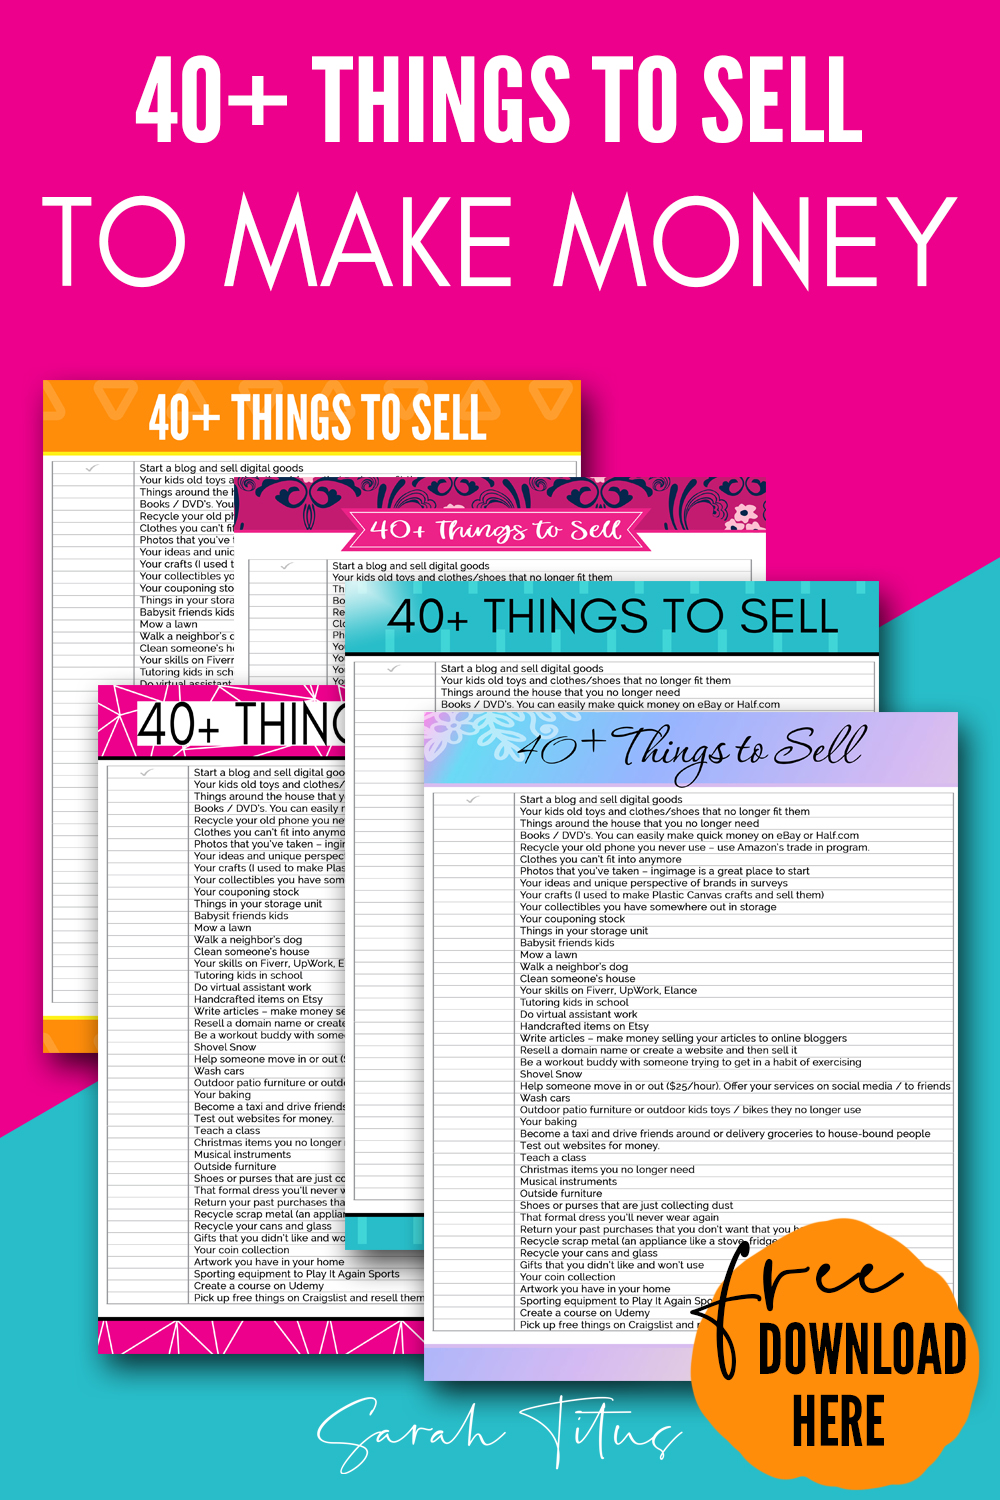 40 Things To Sell Right Now To Make Money Sarah Titus From Homeless To 8 Figures